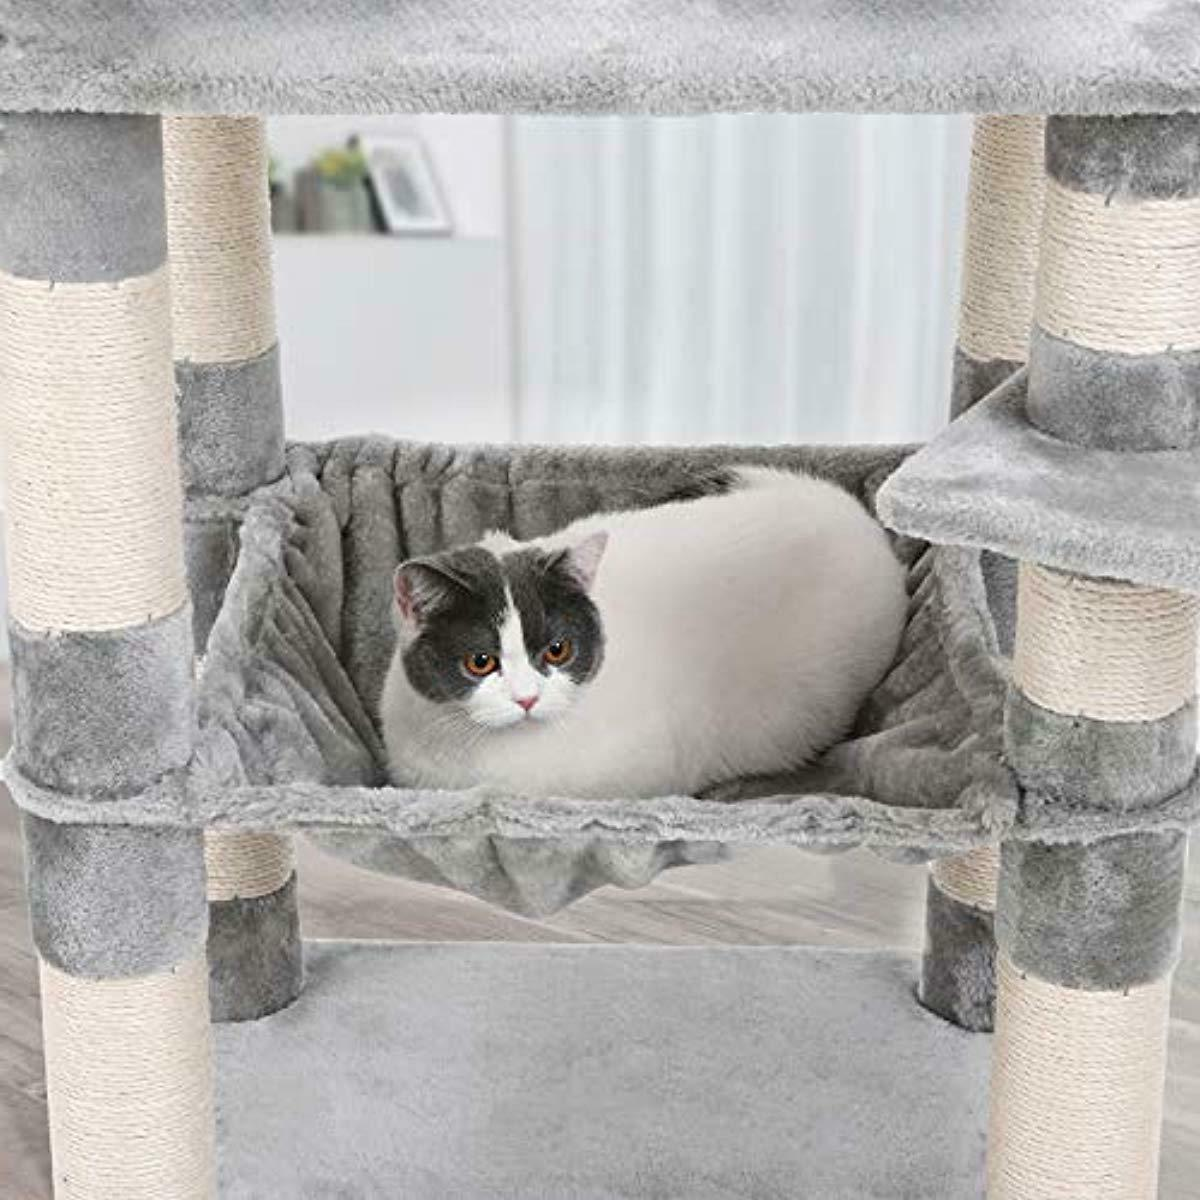 FEANDREA 58 inches Multi-Level Cat with Sisal-Covered Scratching Posts, Plu